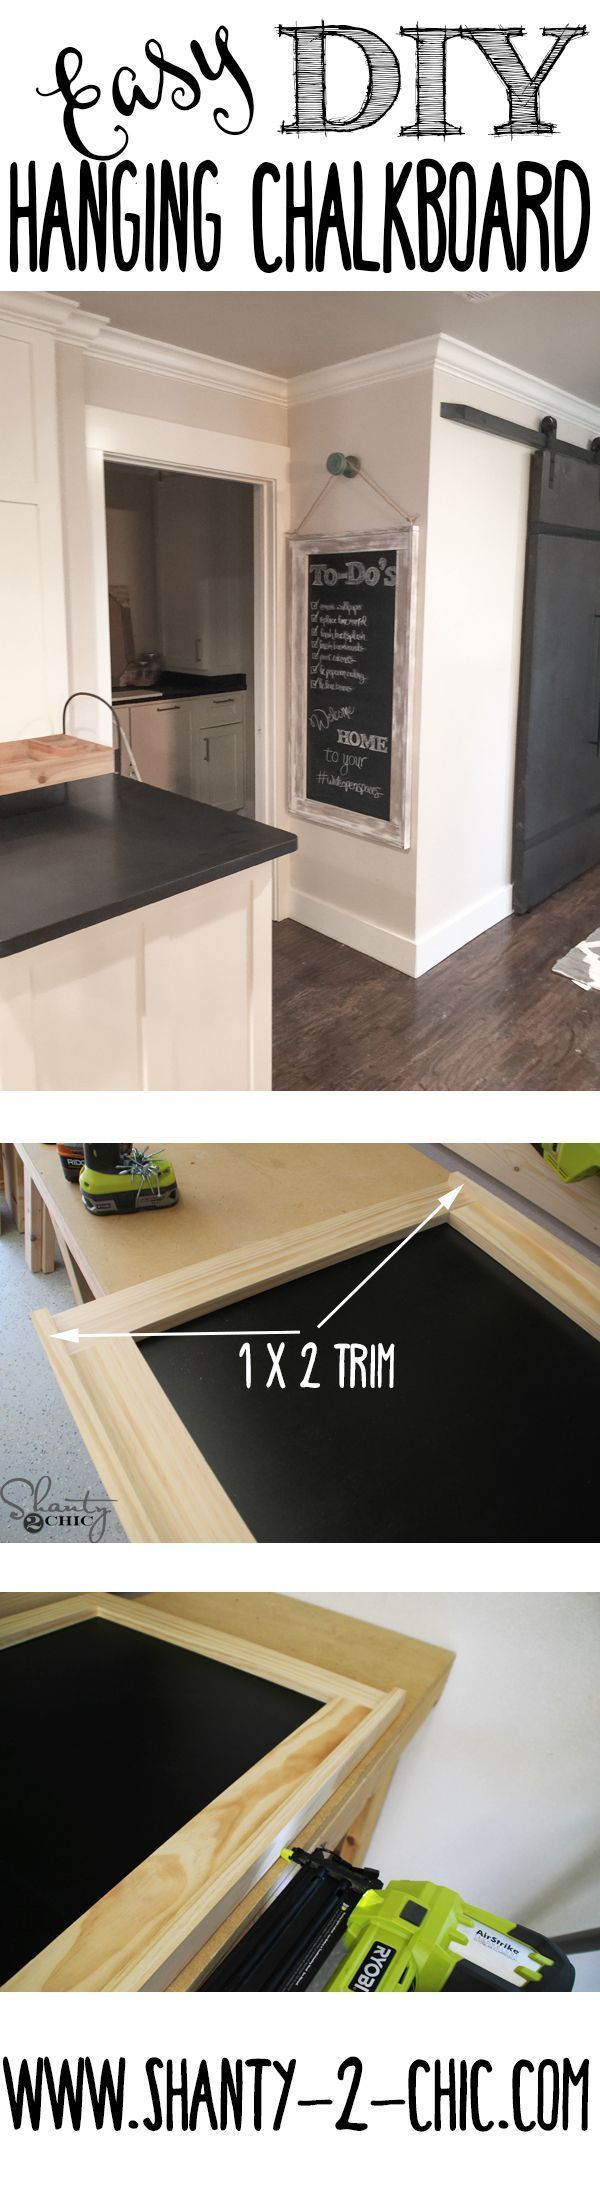 The perfect project for a beginning woodworker! Easy and inexpensive DIY Hanging Chalkboard! Get the free plans and step-by-step tutorial at http://www.shanty-2-chic.com